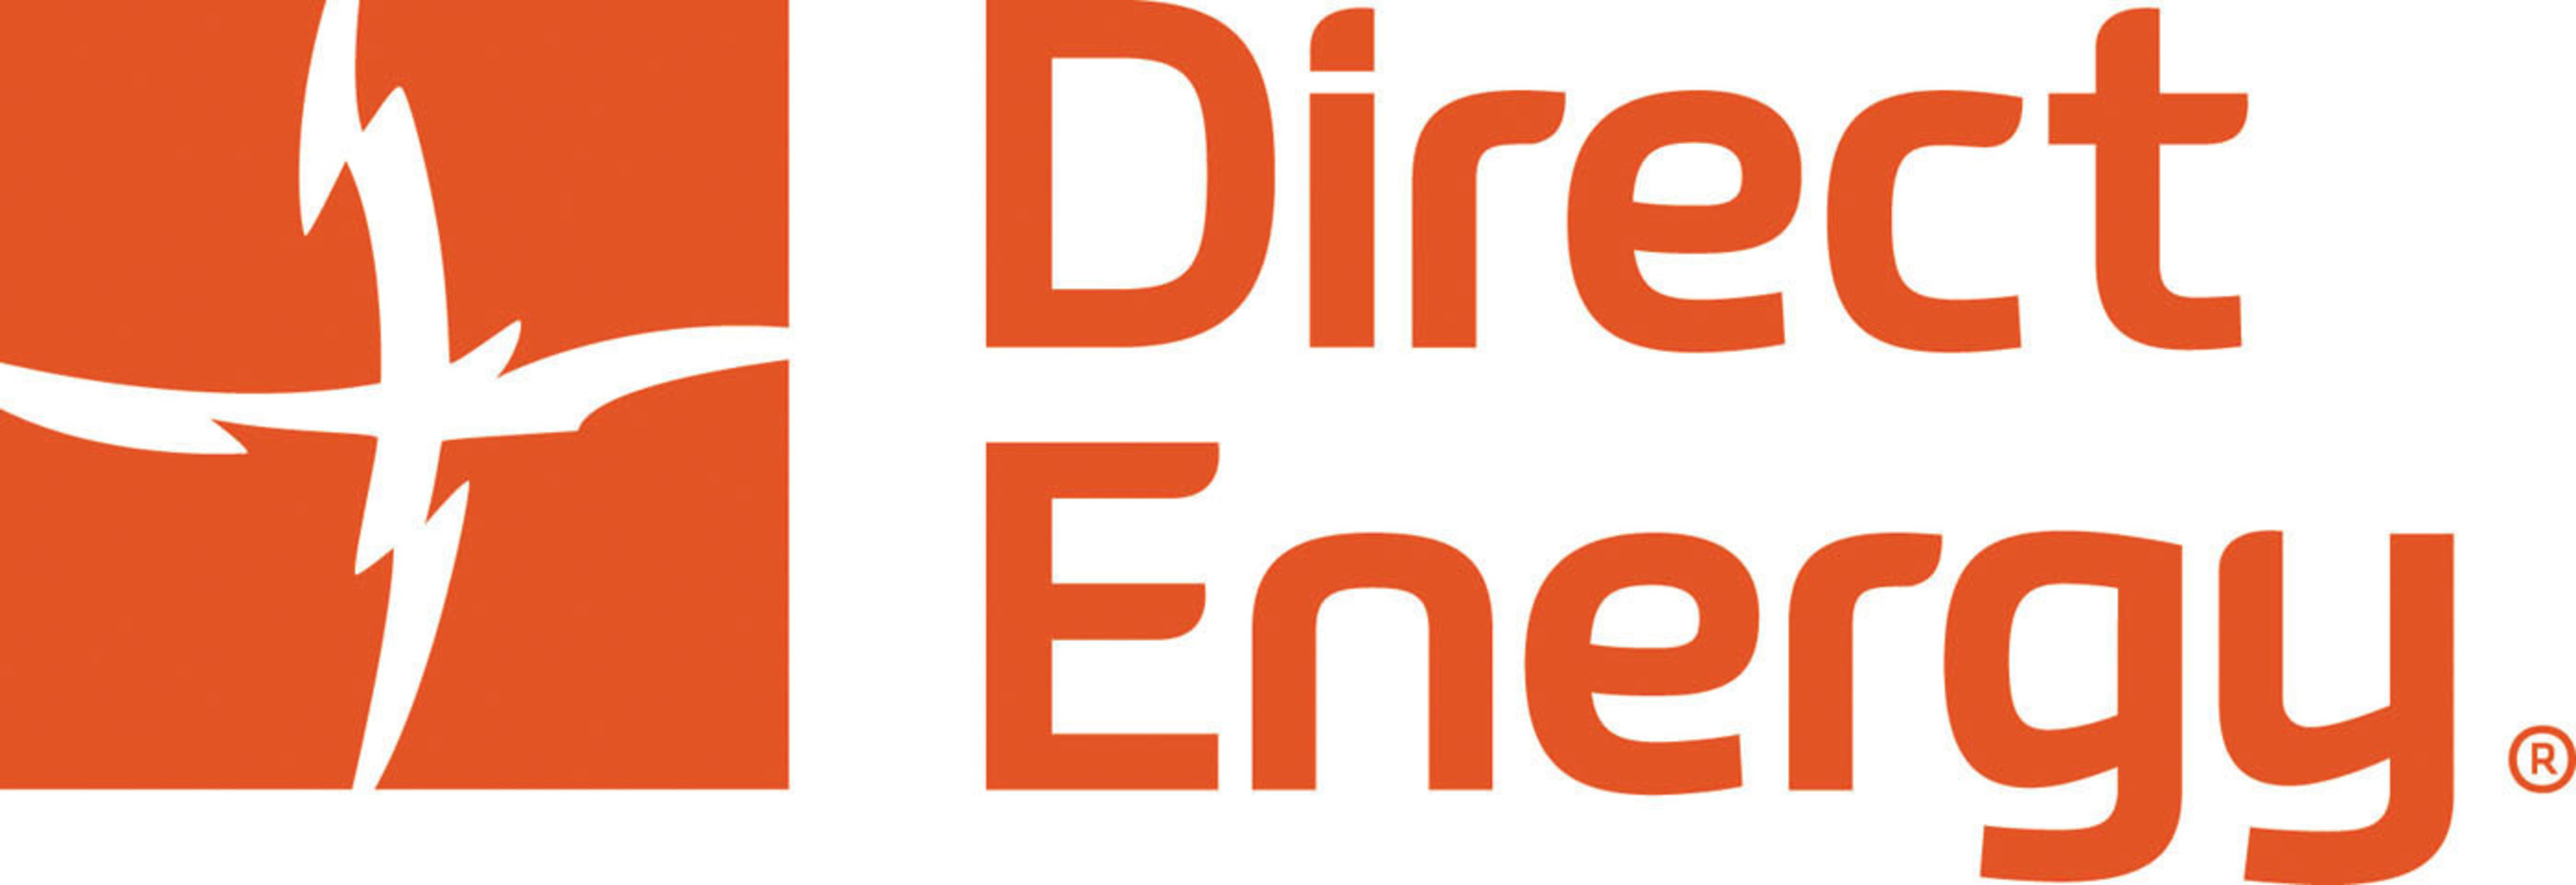 State of Delaware Welcomes Direct Energy as an Innovative